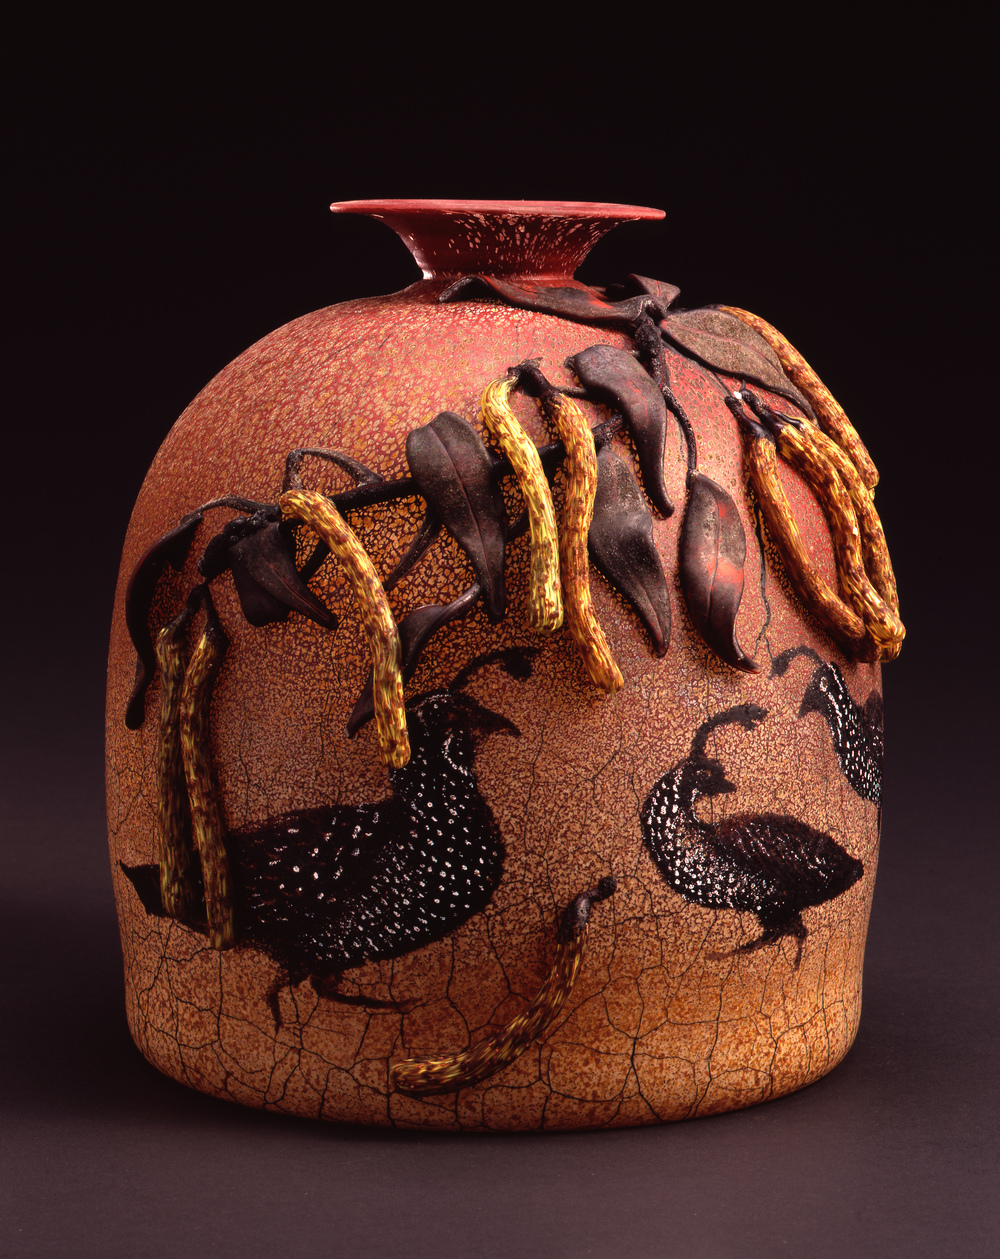 William Morris,  Vessel with California Quail and Locust Pods    (2004, glass, 10 5/8 x 10 1/2 x 9 1/2 inches), WM.38